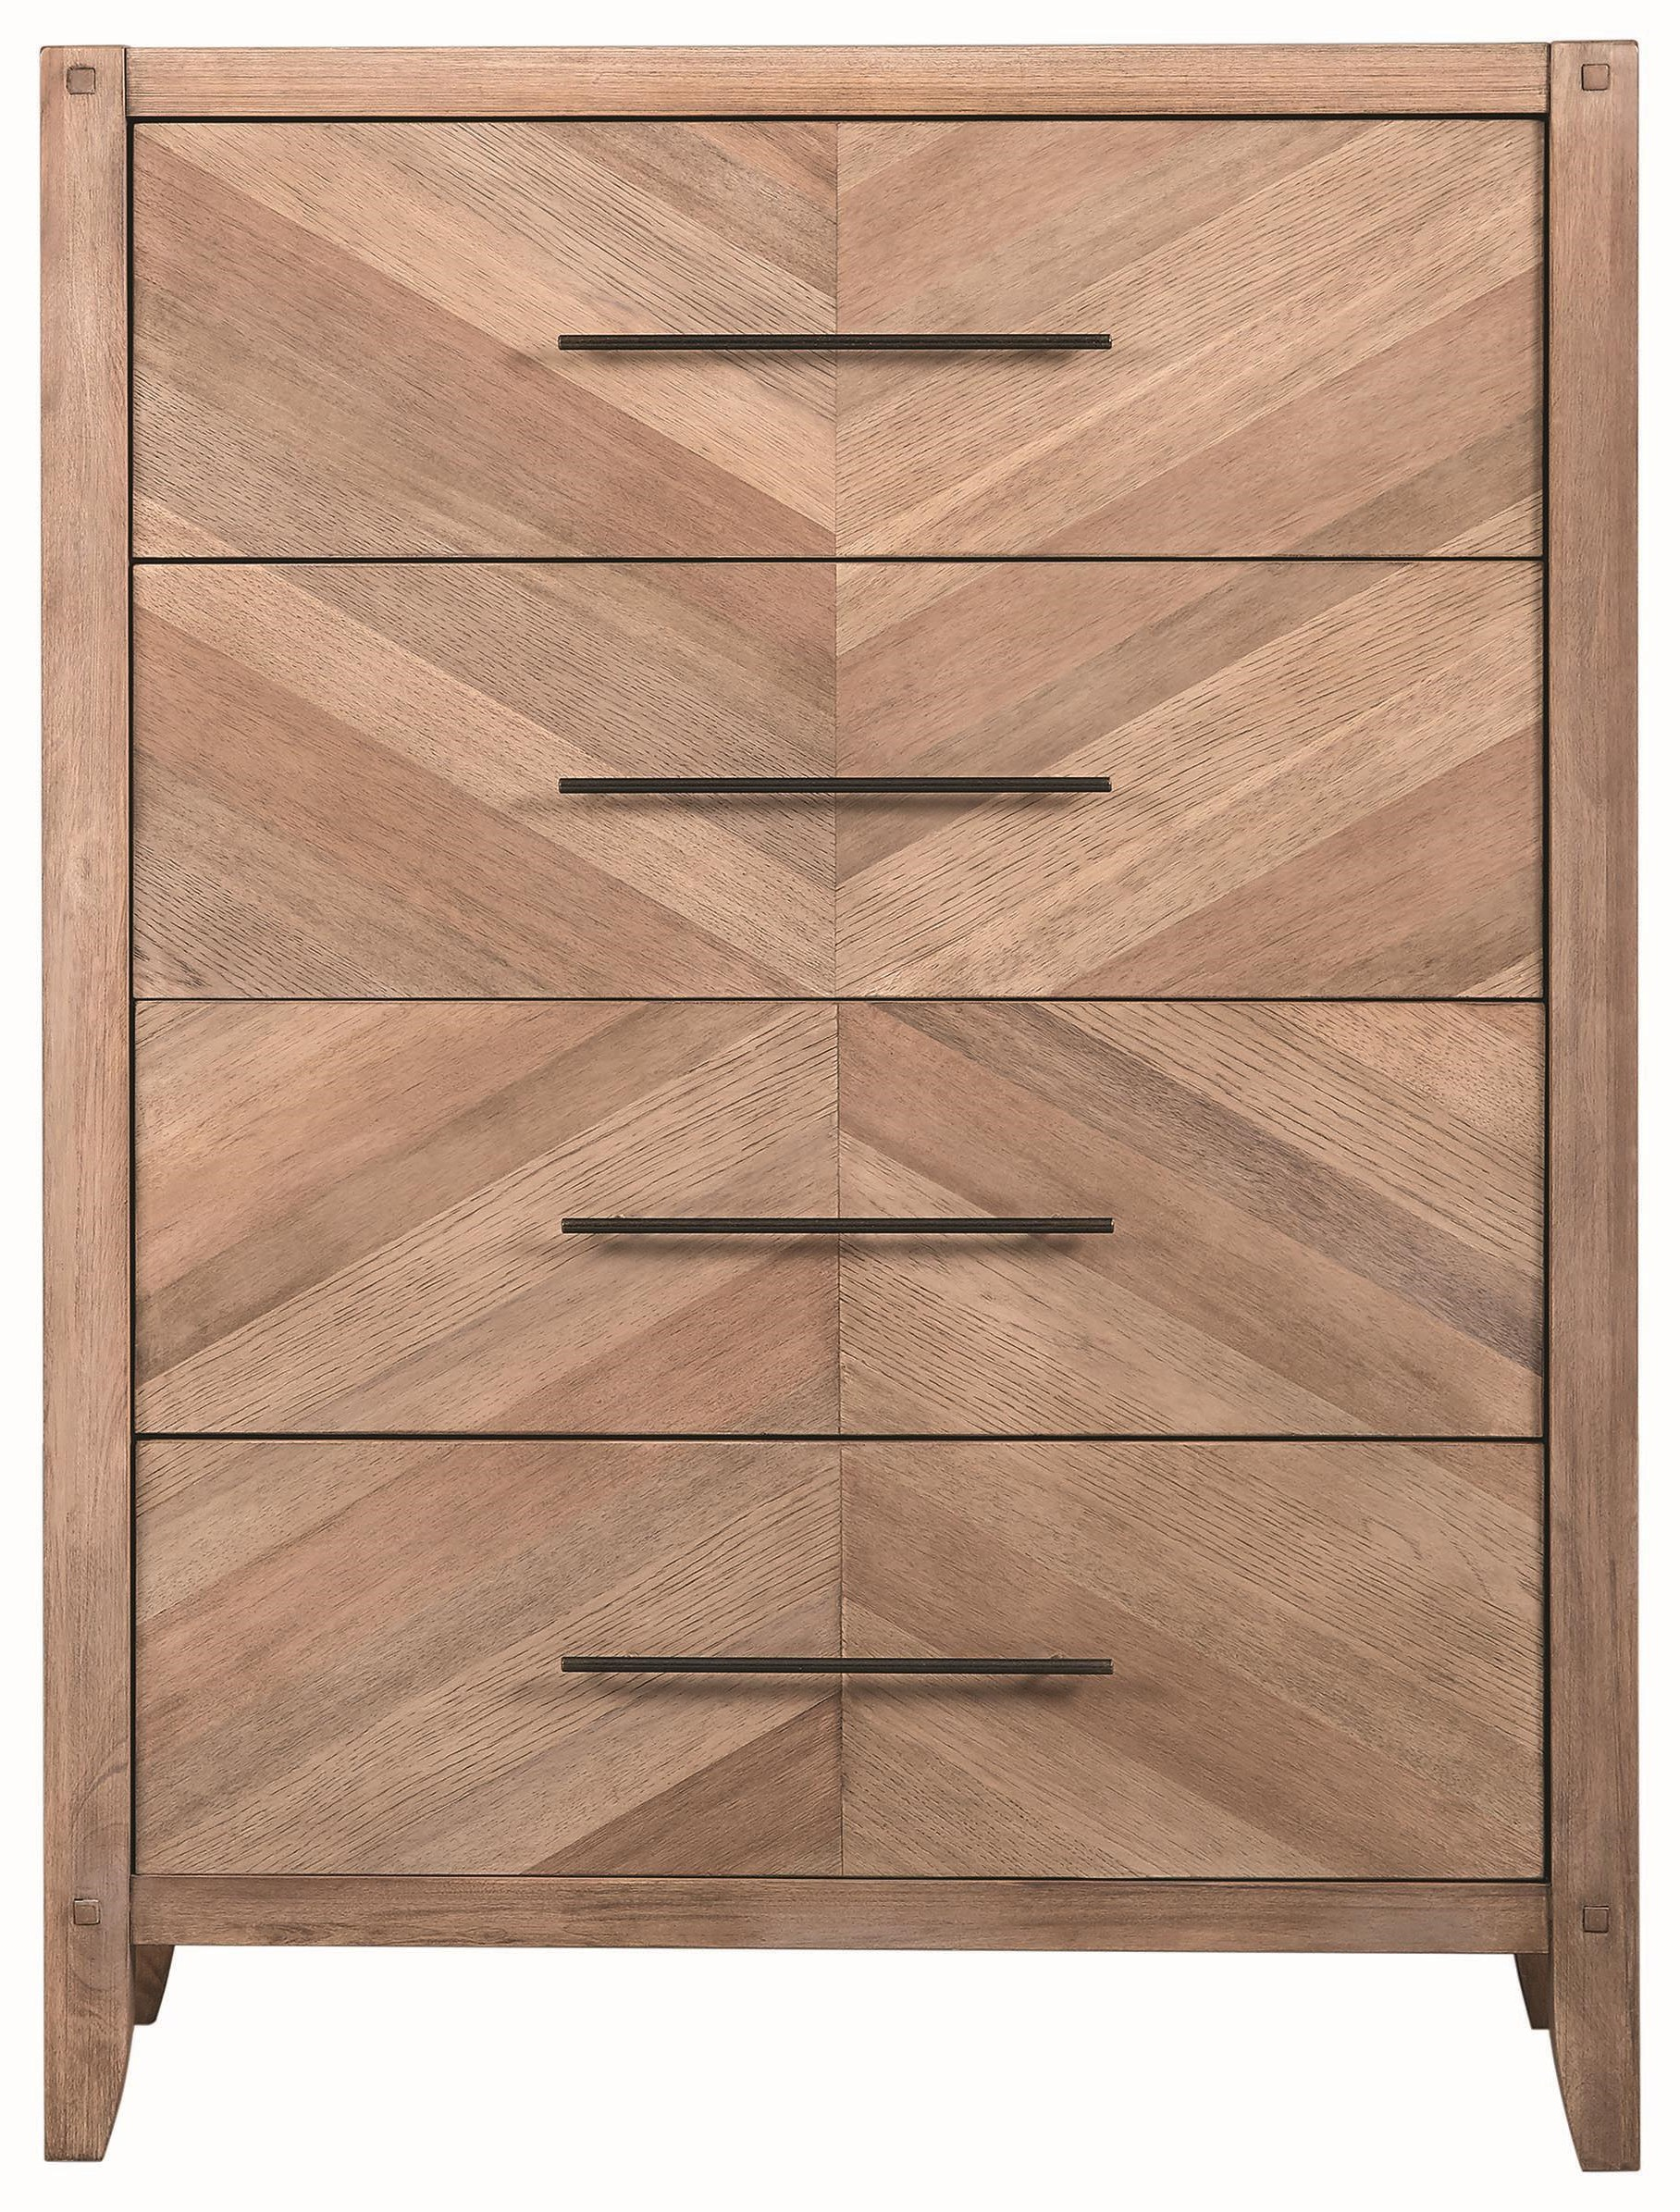 Scott Living Auburn 4 Drawer Chest - Item Number: 204615